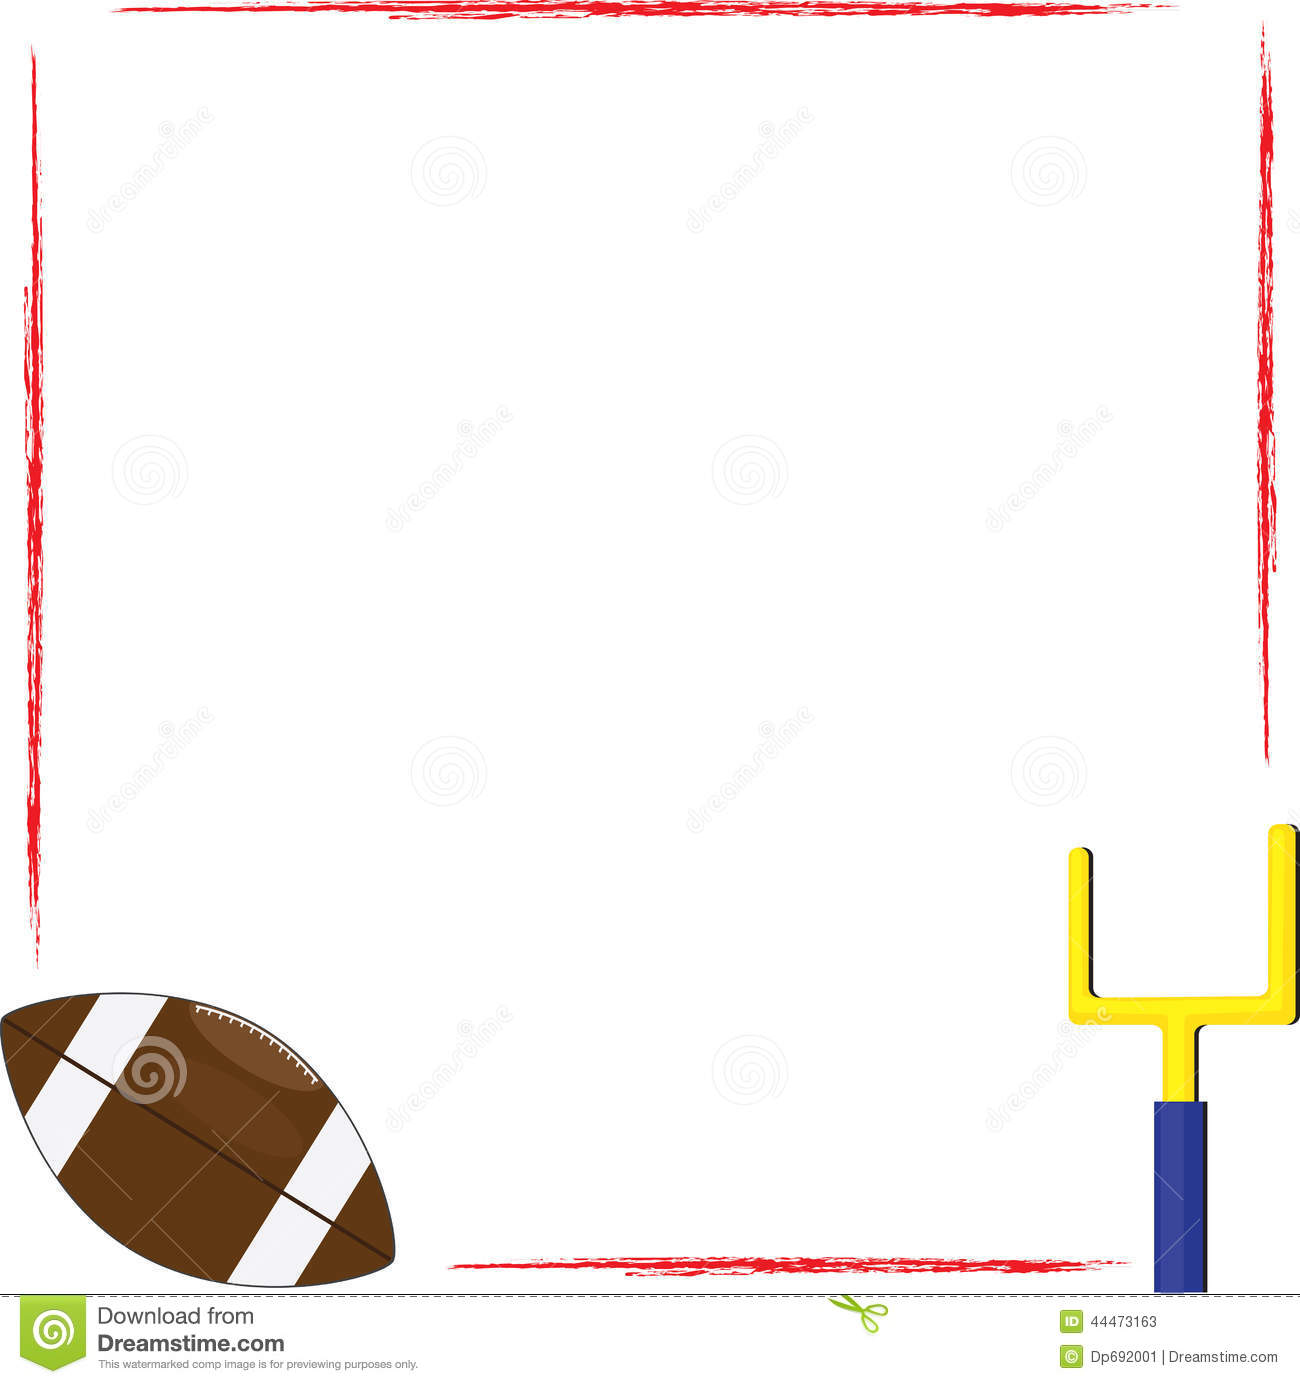 Football Frame Stock Vector - Image: 44473163